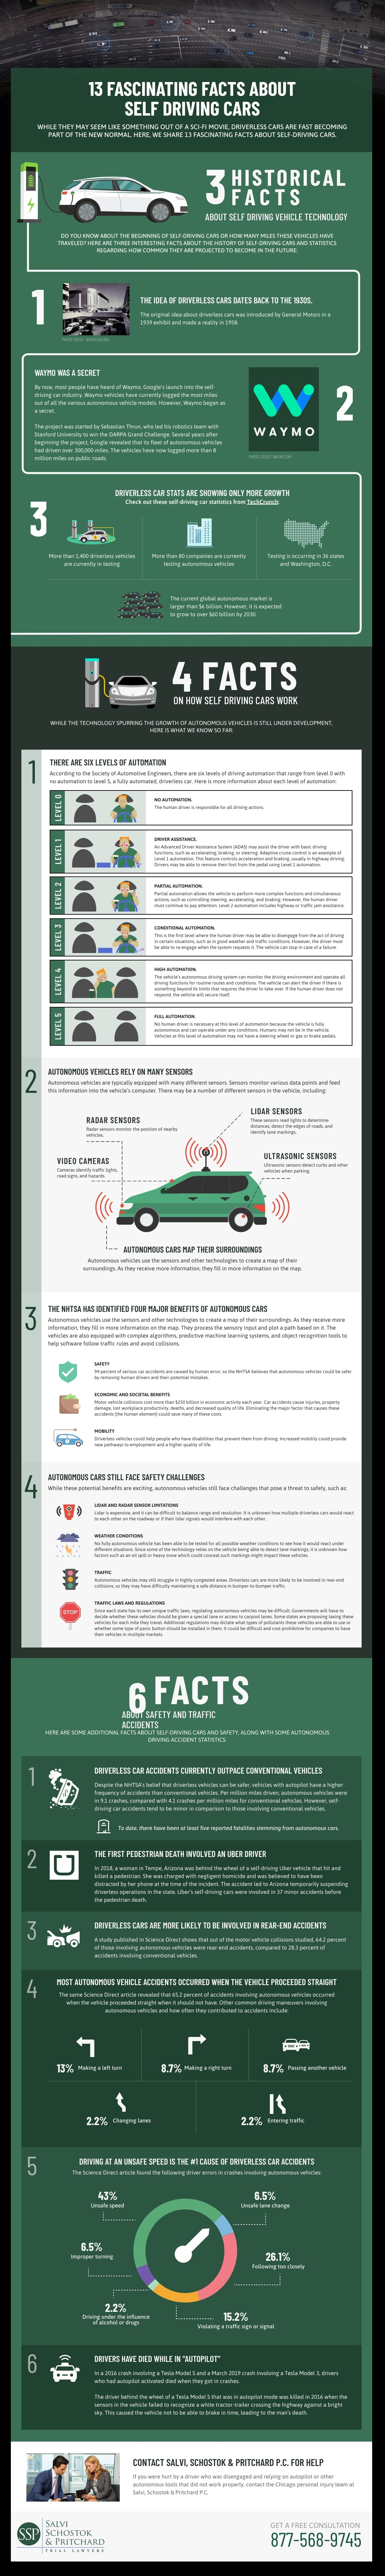 13 Fascinating Facts About Self Driving Cars - Salvi Law